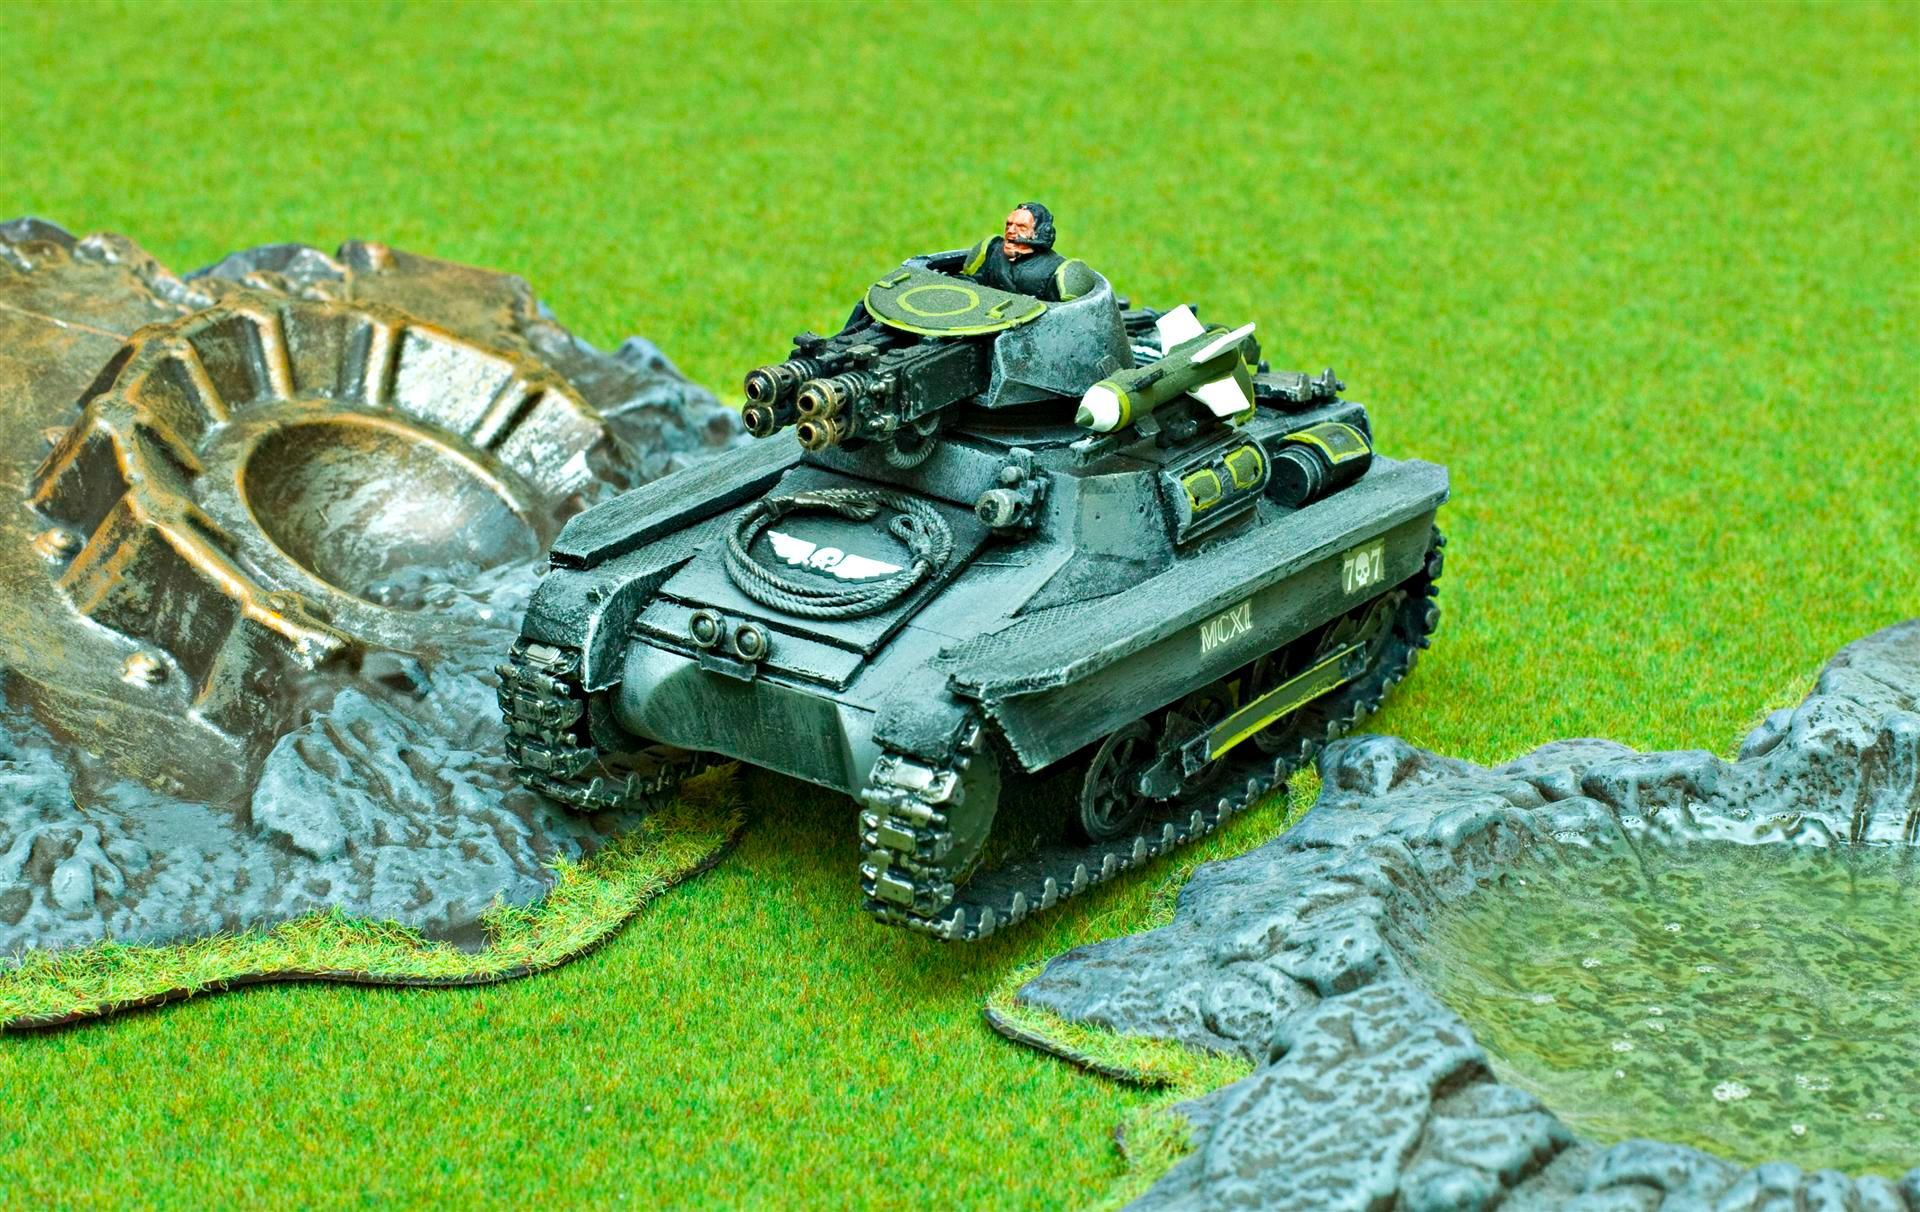 Apocalypse, Army, Count As, Flamer, Gaming Mat, Green, Grey, Guard, Heavy Flamer, Hellhound, Hunter Killer, Imperial, Imperial Guard, Imperials, Tank, Tread, Vdr